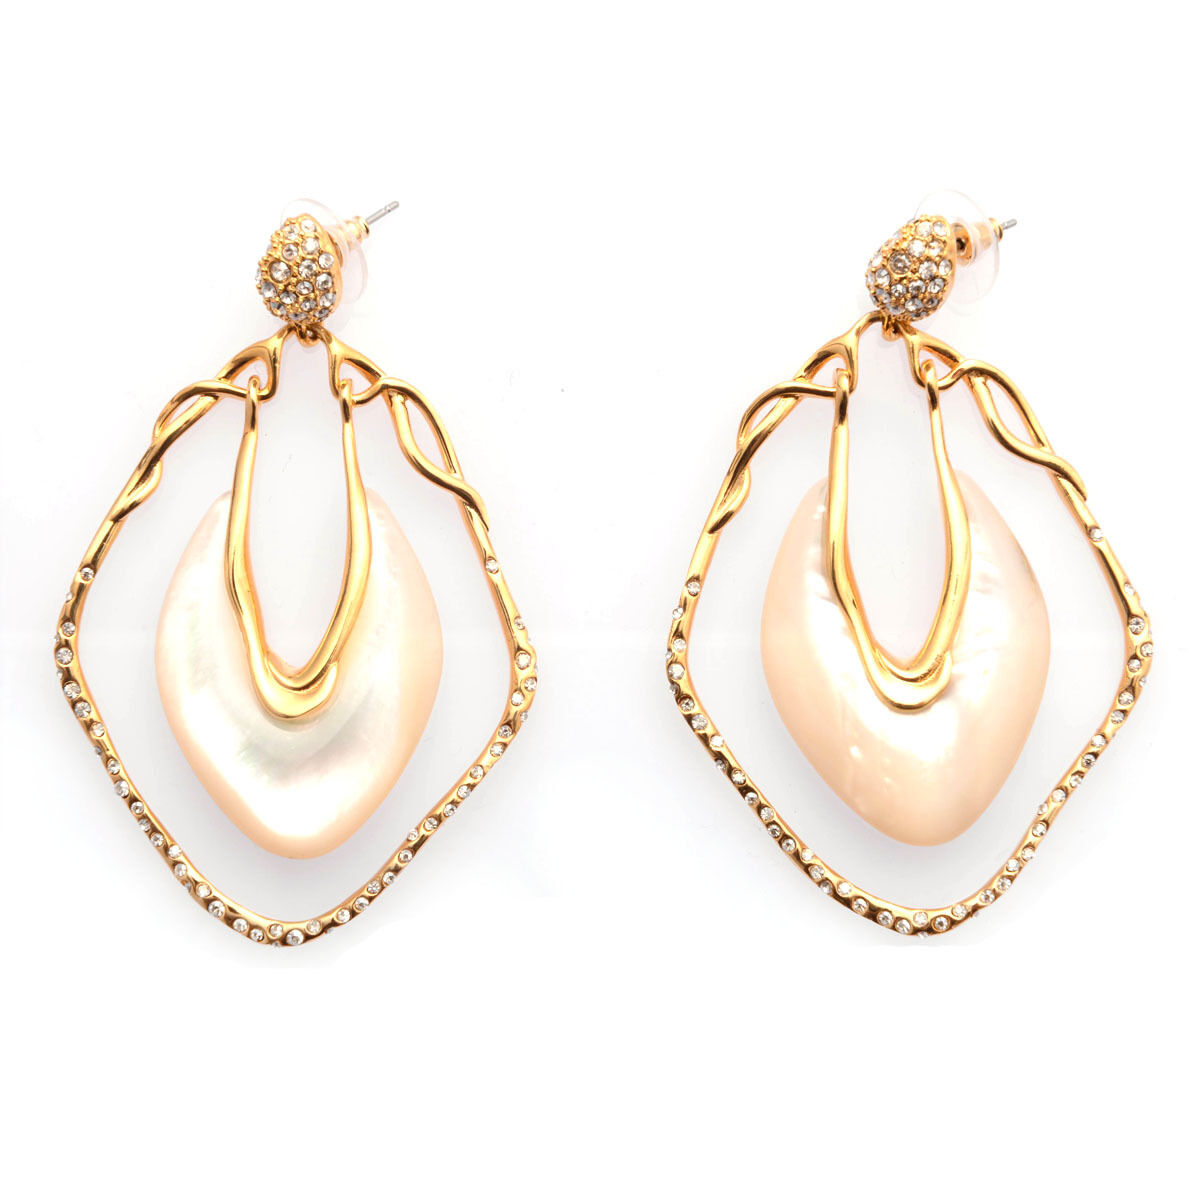 De Buman 18k Yellow gold Plated Mother-of-Pearl and Crystal Earrings